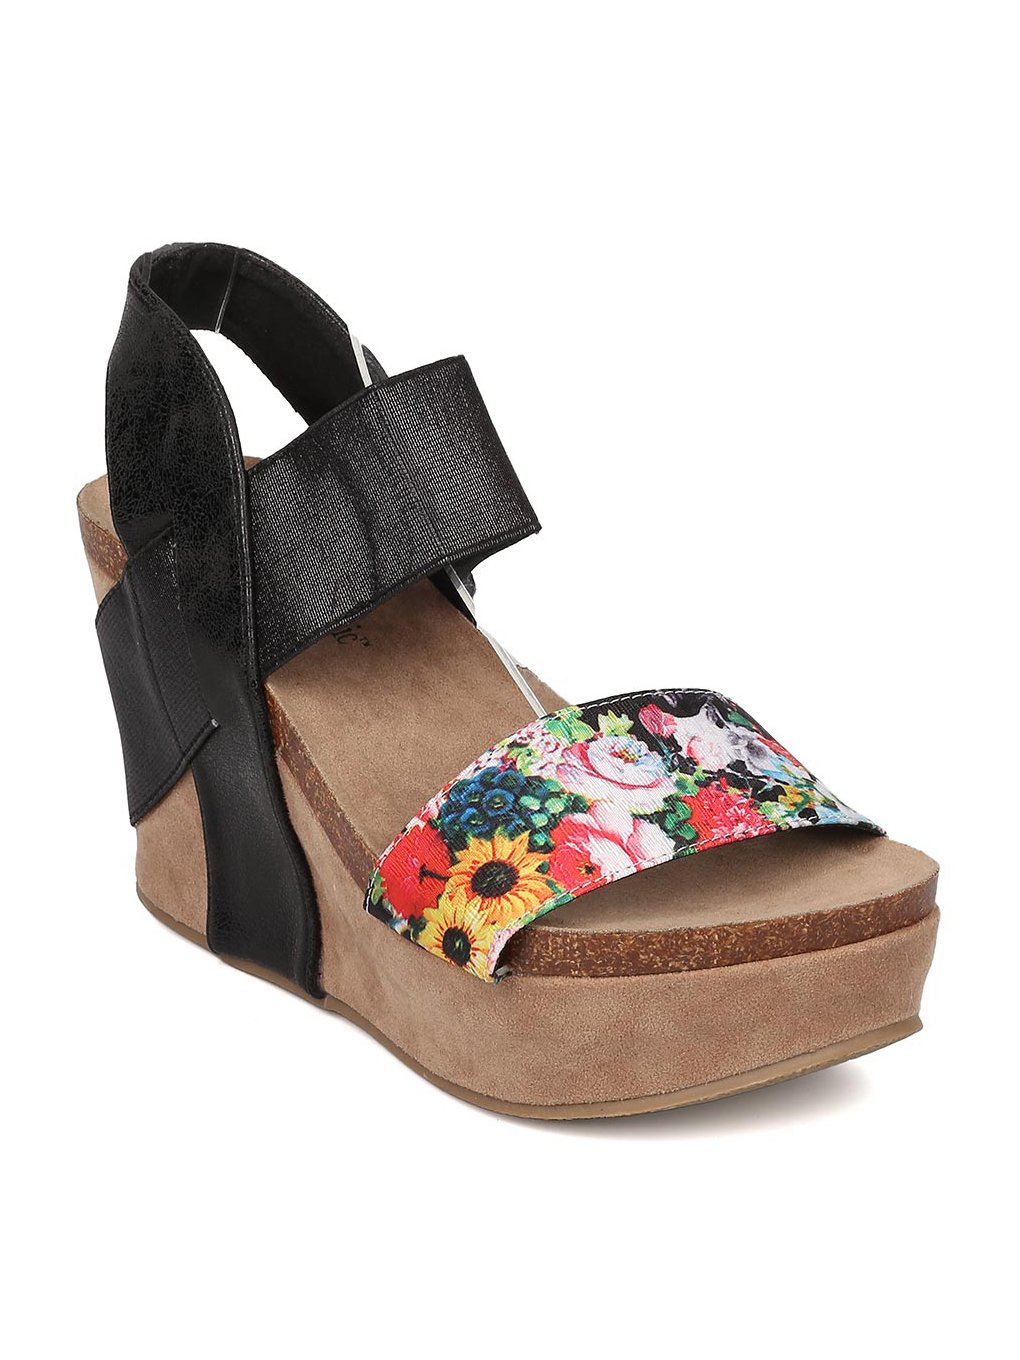 Heartthentic Tricia-10 Women Mixed Media Floral Platform Wedge Sandal HA98 B07122FDW1 7.5 M US|Black Mix Media